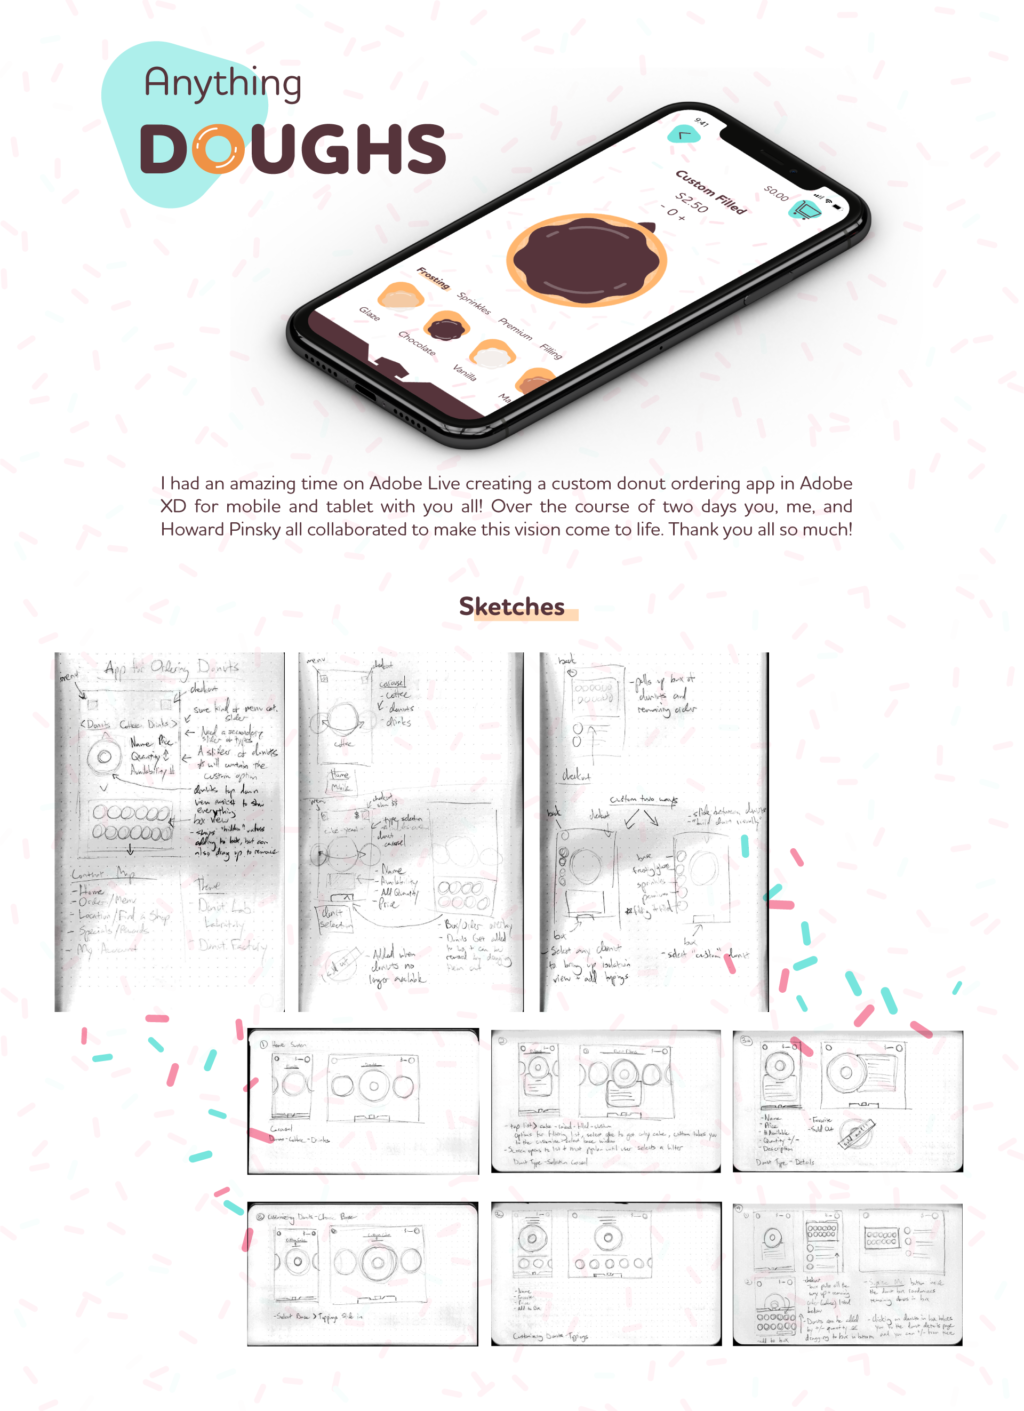 Phone Mock up of Anything Doughs on a phone screen in perspective. I had an amazing time on Adobe Live creating a custom donut ordering app in Adobe XD for mobile and tablet with you all! Over the course of two days you, me, and Howard Pinsky all collaborated to make this vision come to life. Thank you all so much! Early sketches of the app.